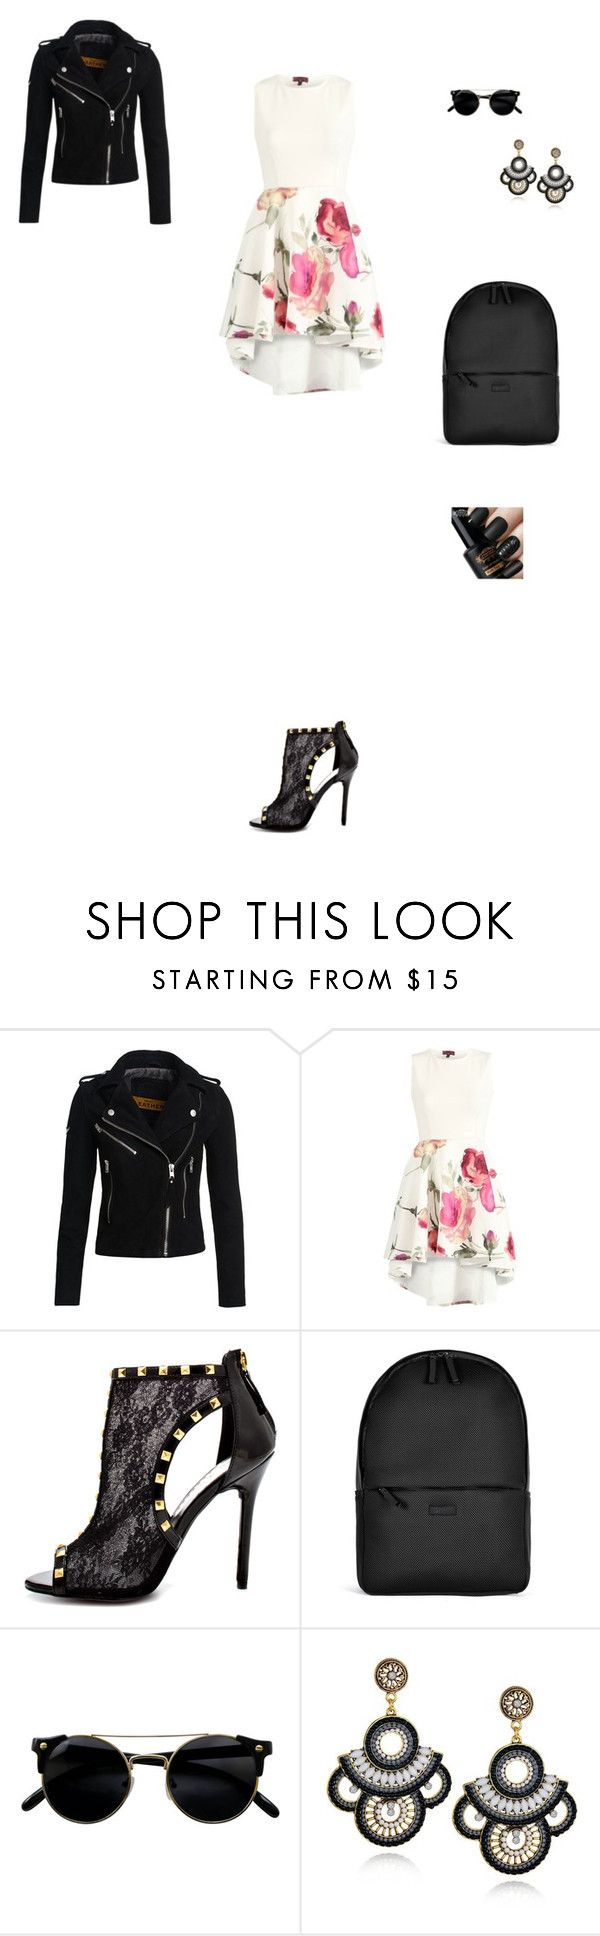 """""""Untitled #2099"""" by anamaria-zgimbau ❤ liked on Polyvore featuring Superdry, Bebe and Rains"""